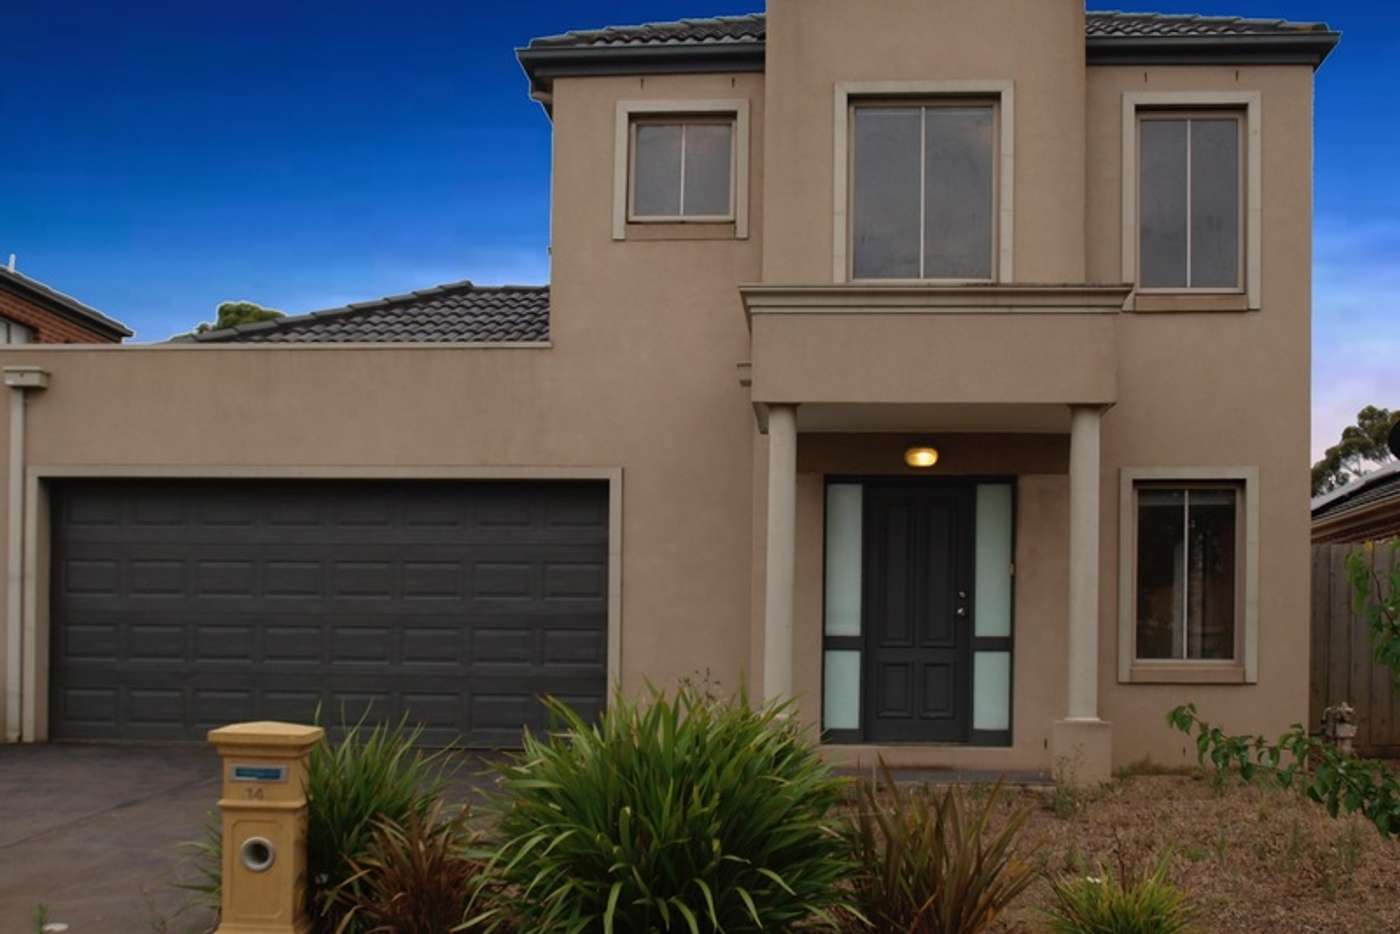 Main view of Homely house listing, 14 Chesterfield Road, Cairnlea VIC 3023